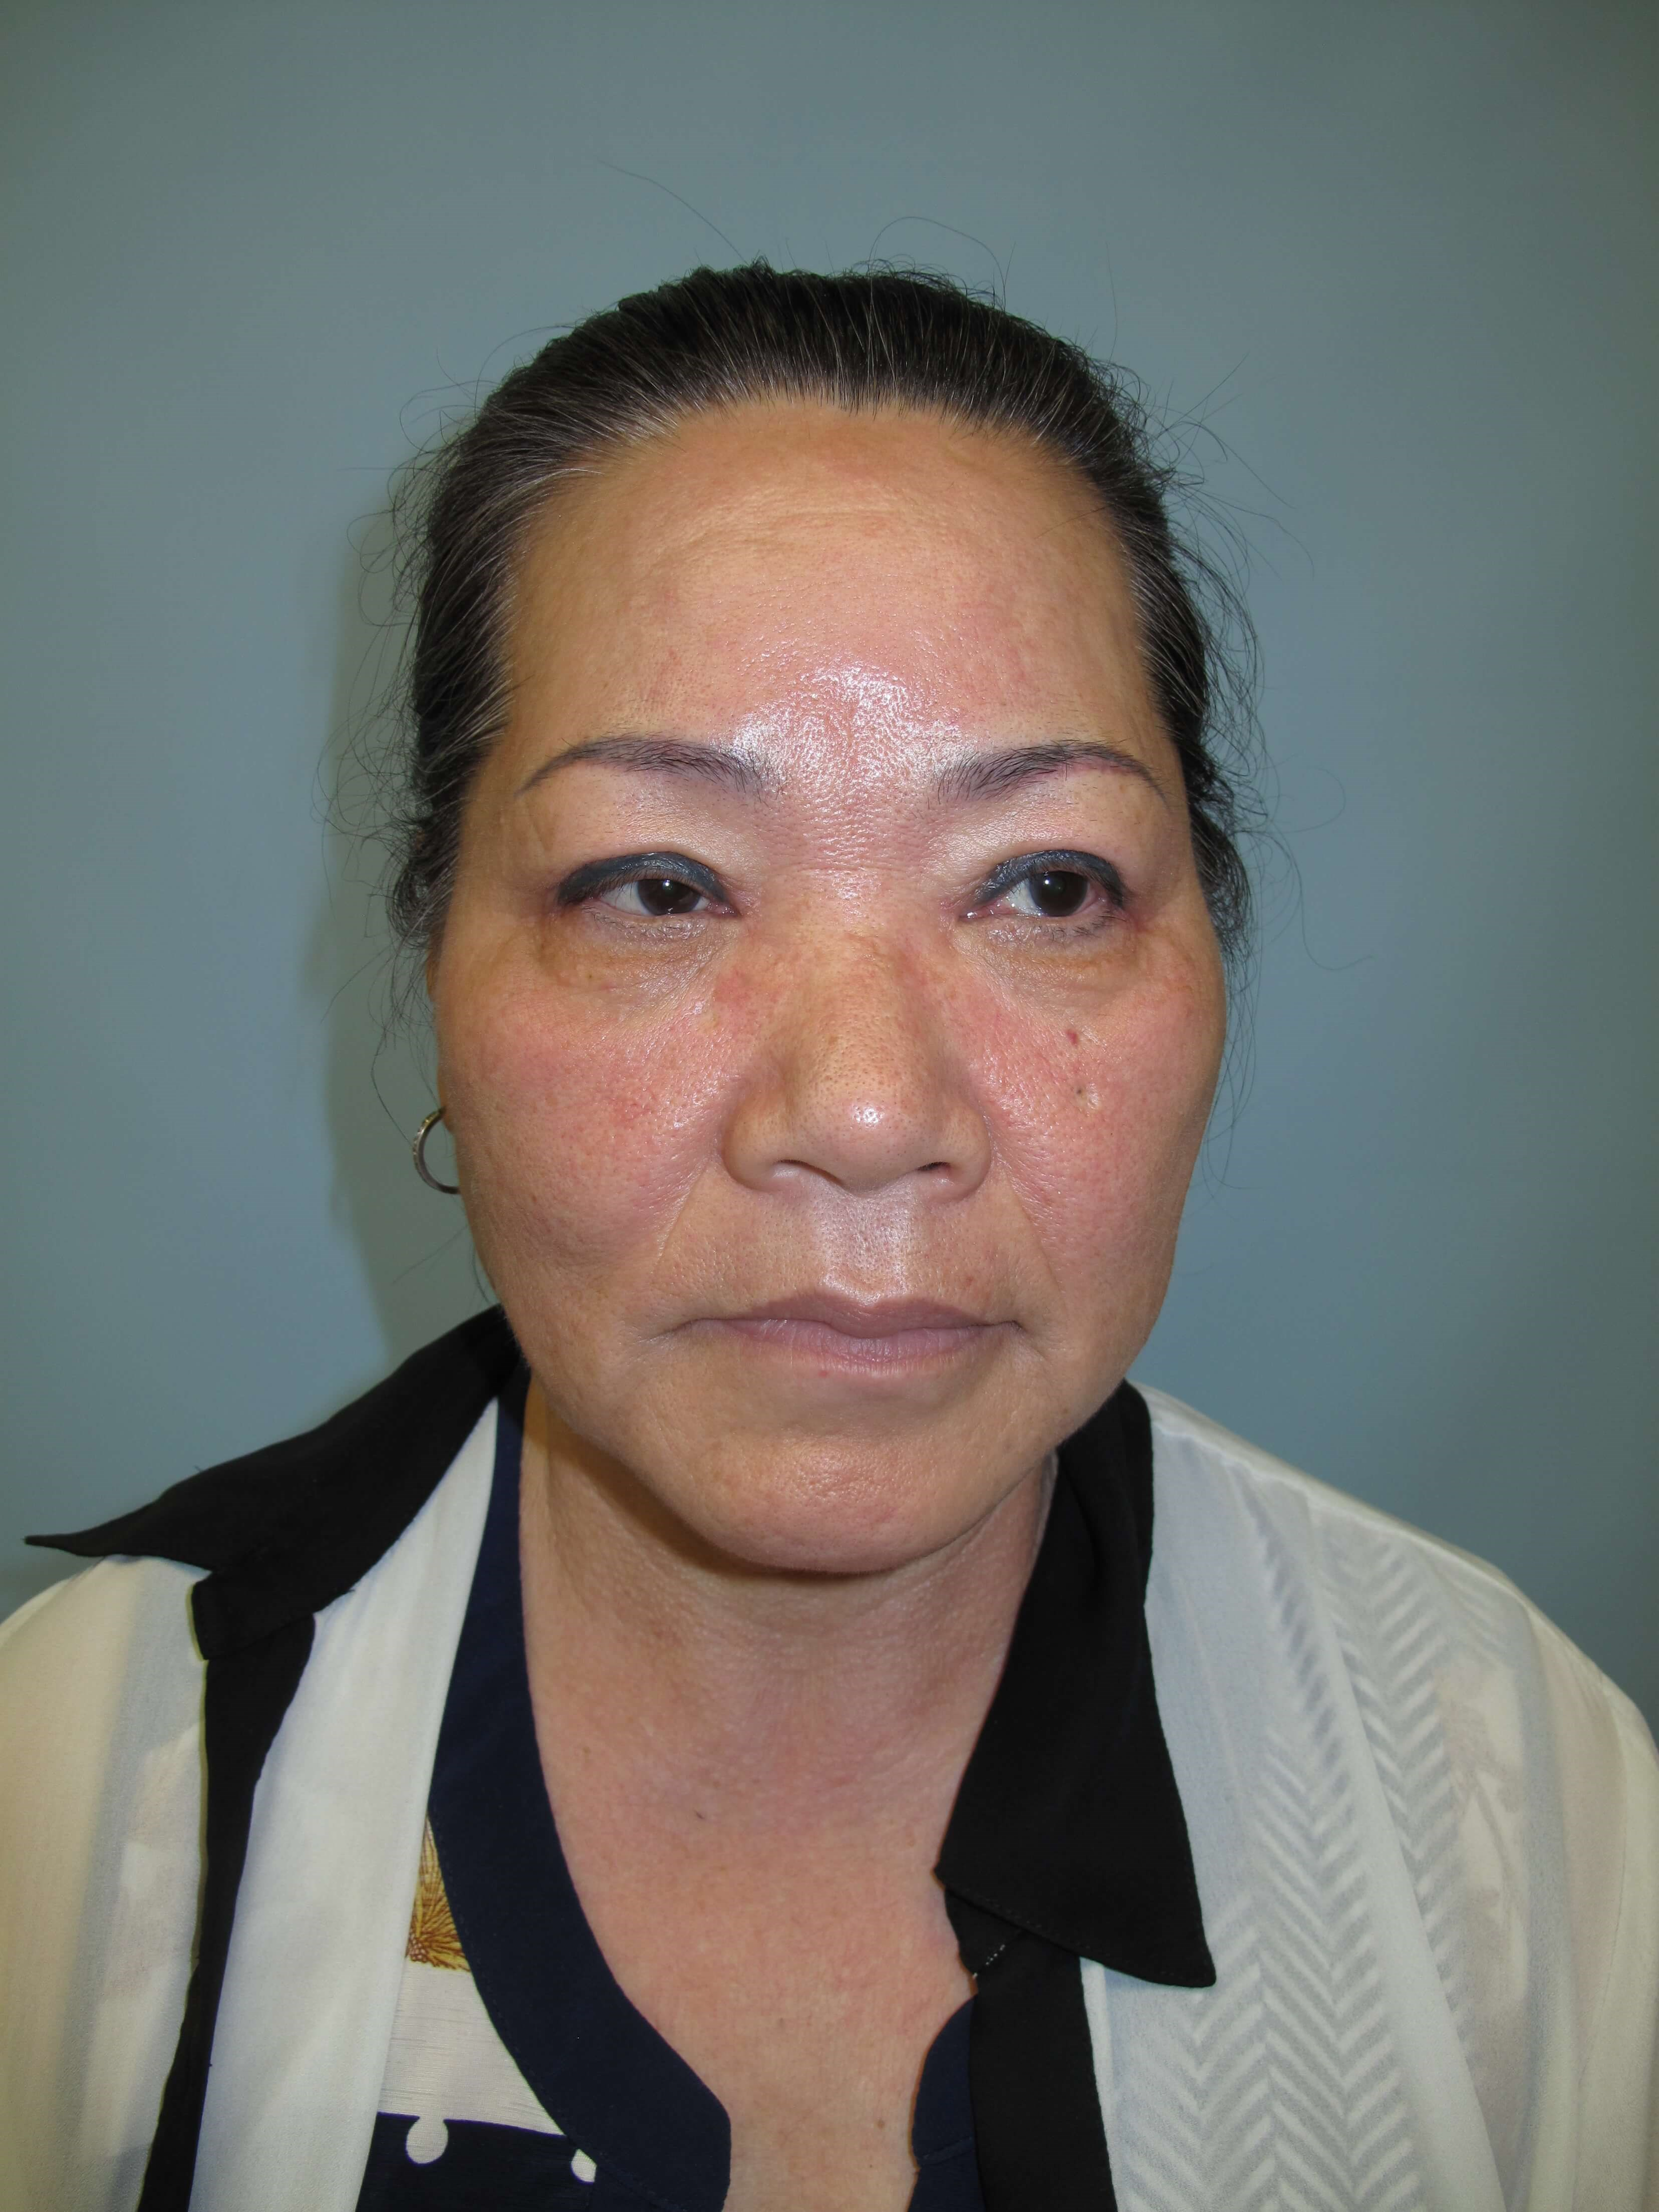 East Asian blepharoplasty After